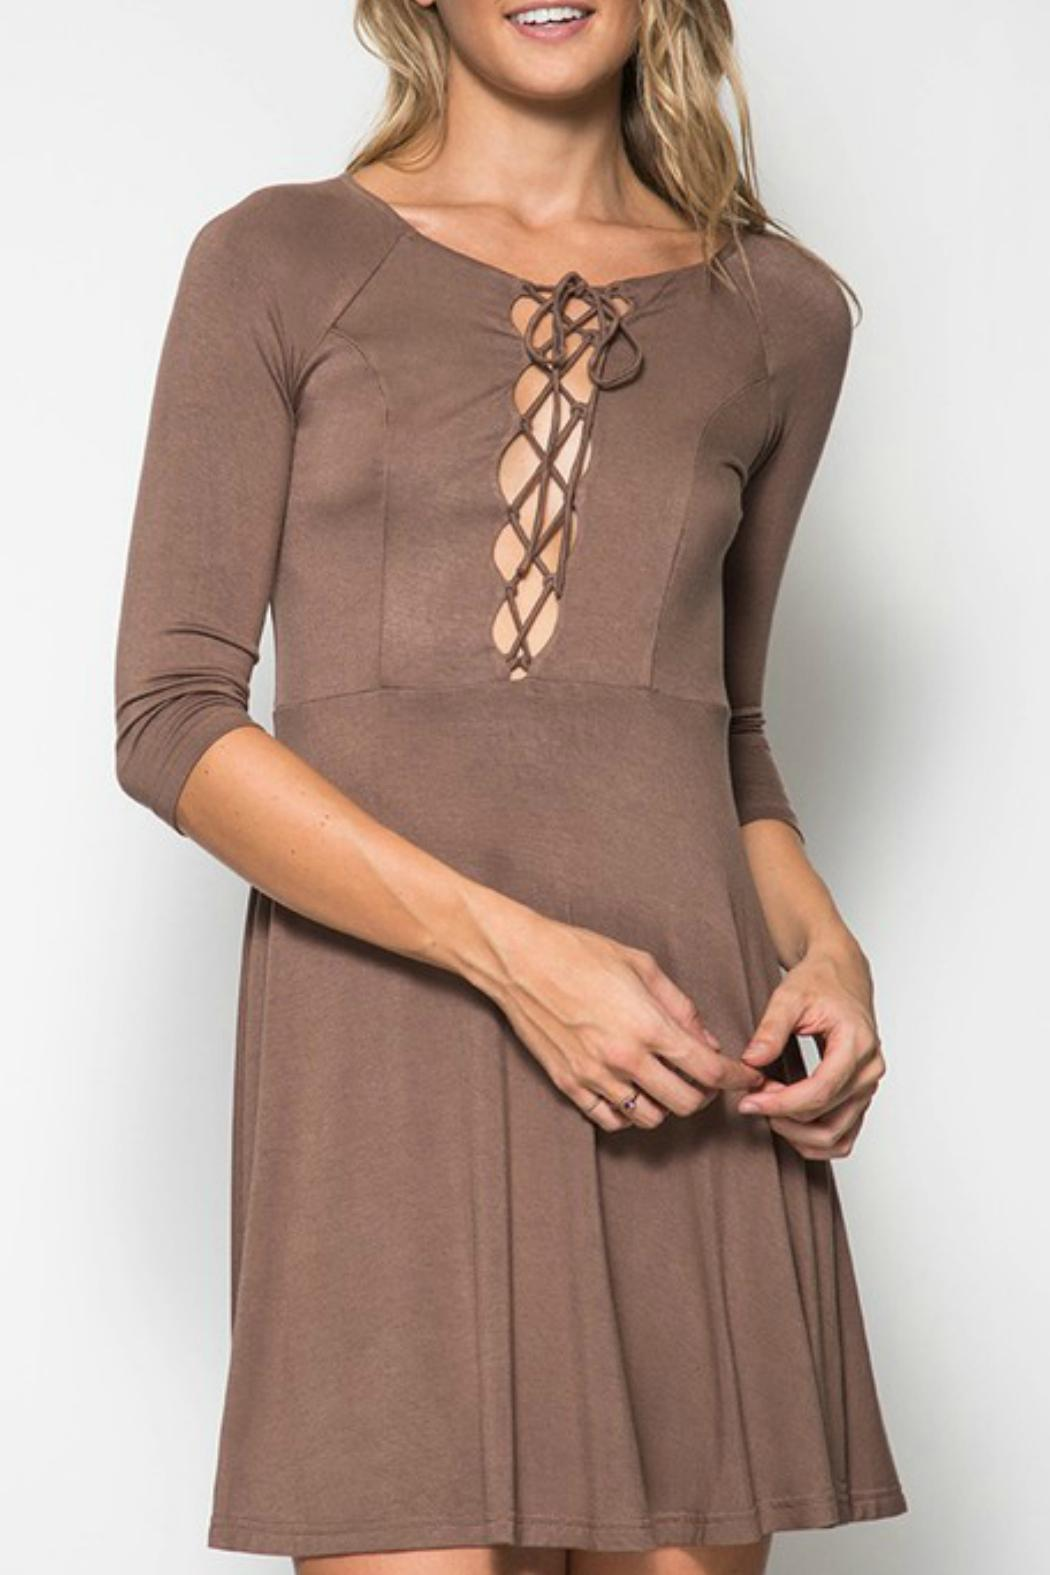 She + Sky Lace Up Front Dress - Main Image